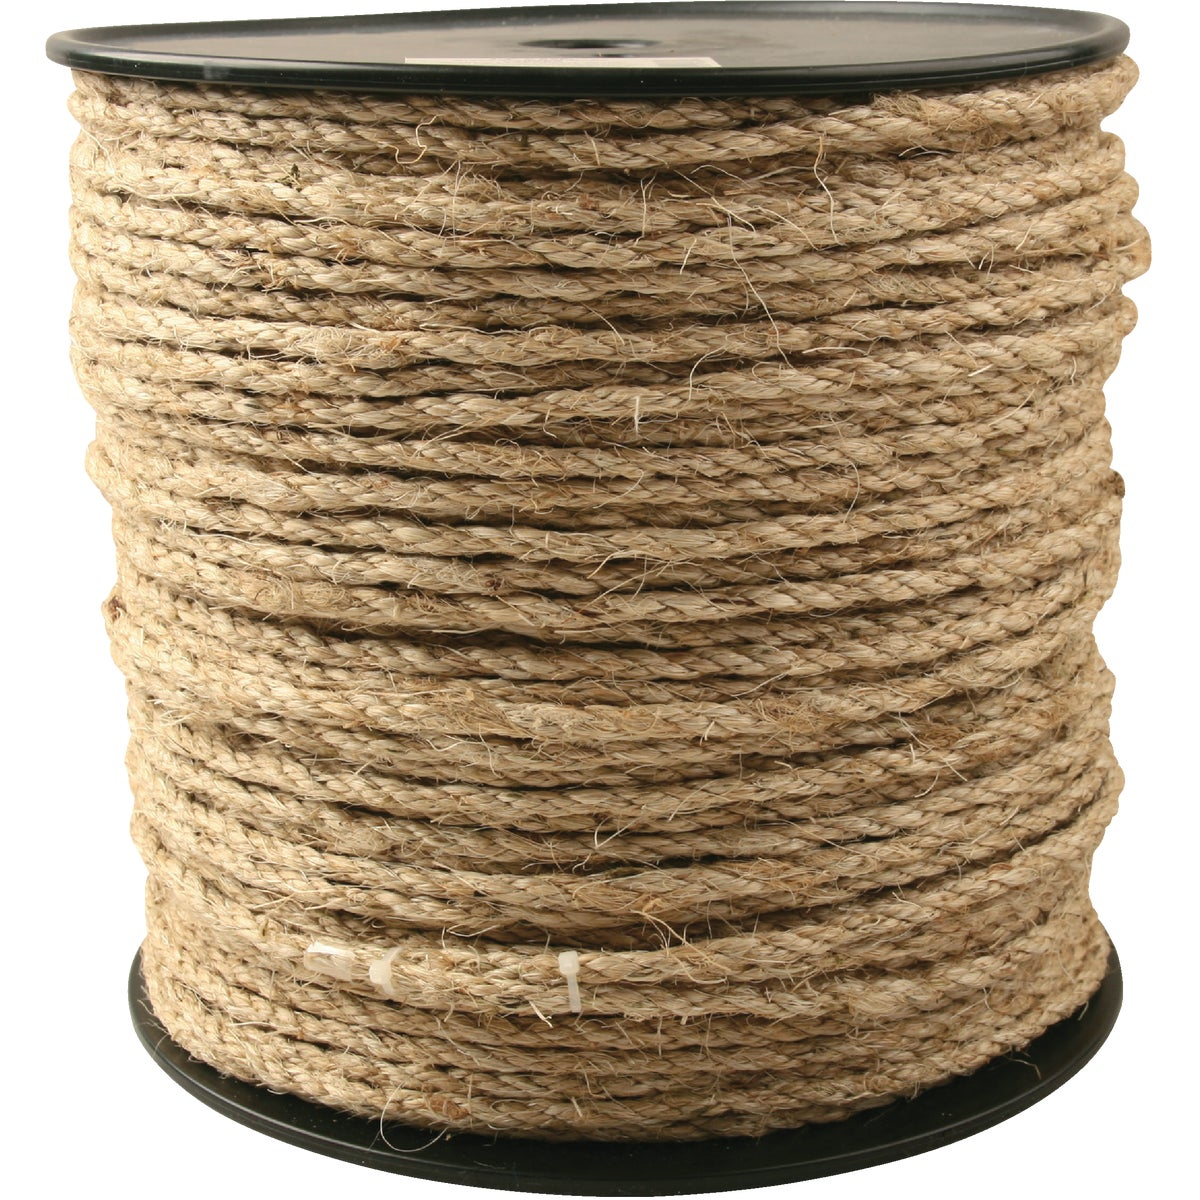 "1/4""X750'TWST SISAL ROPE - 748285 by Do it Best"